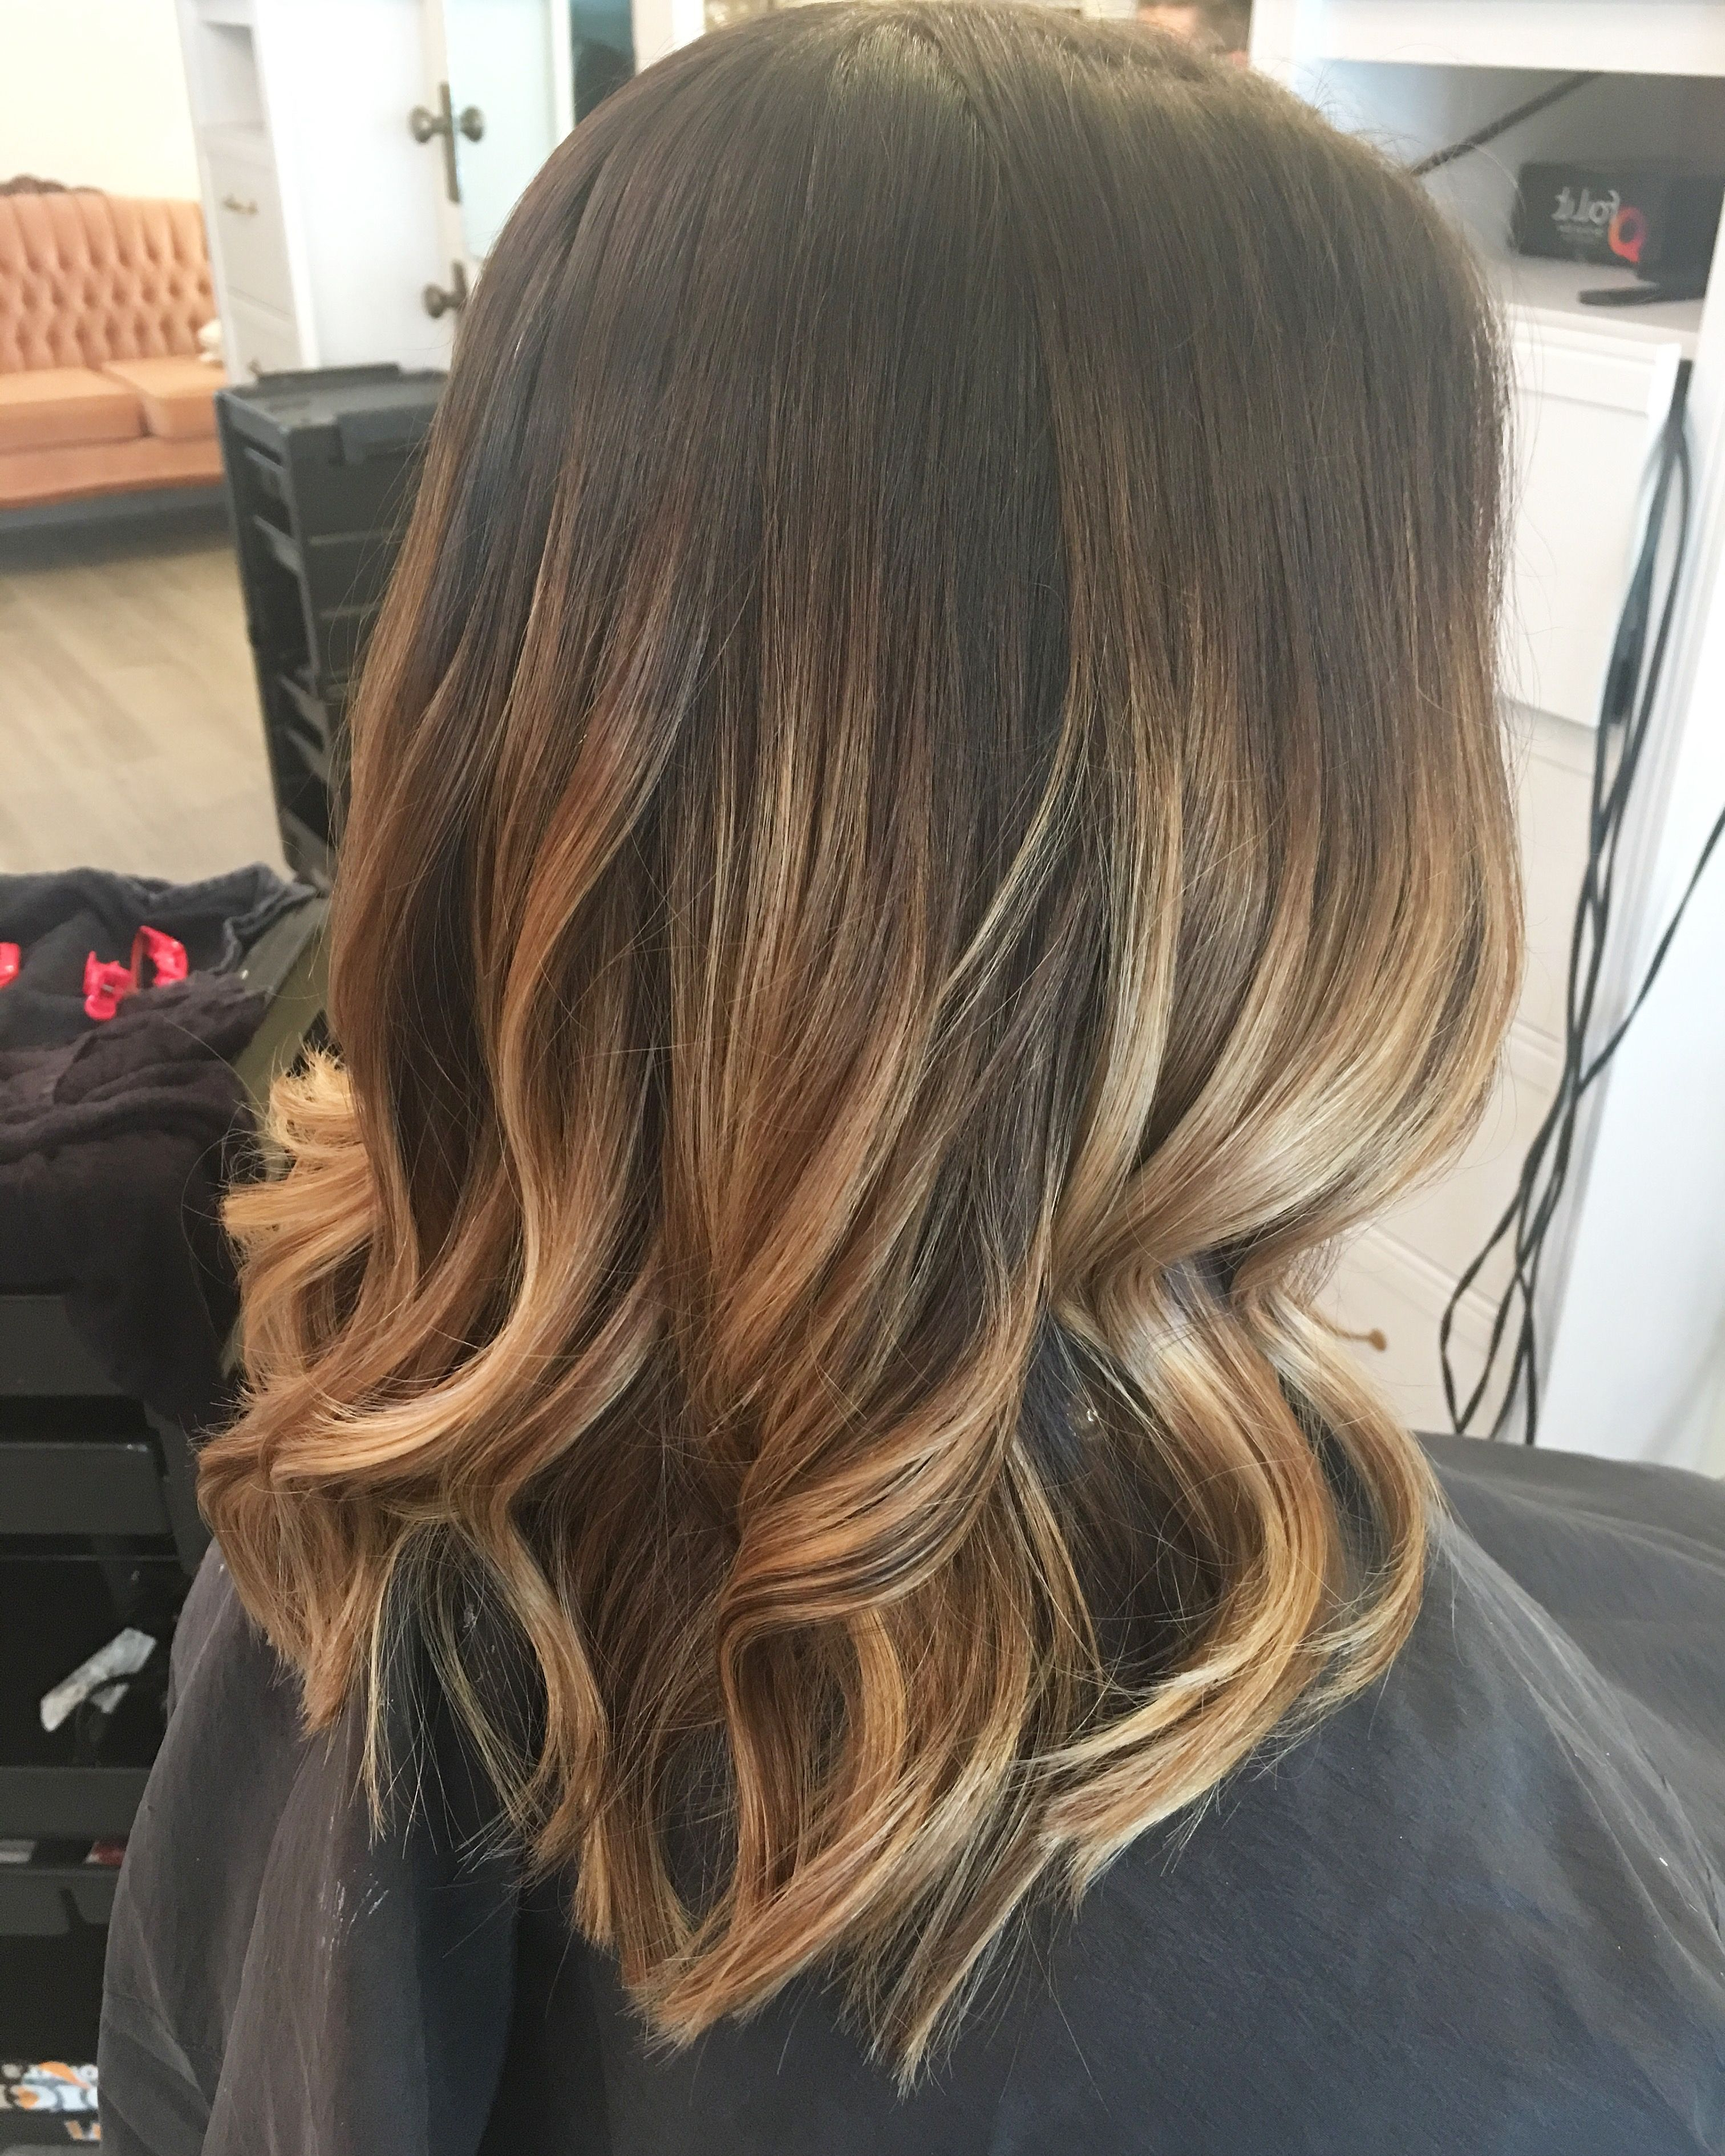 Blonde Balayage Caramel Warm Tones Dark Roots Brunette Curls Lob Regarding Preferred Warm Toned Brown Hairstyles With Caramel Balayage (View 6 of 20)